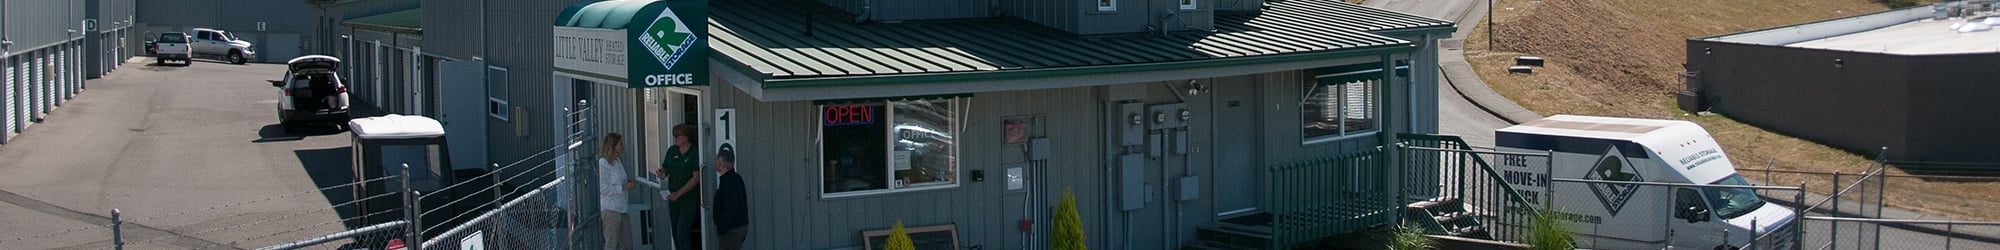 Self Storage facility in Poulsbo offering boat storage